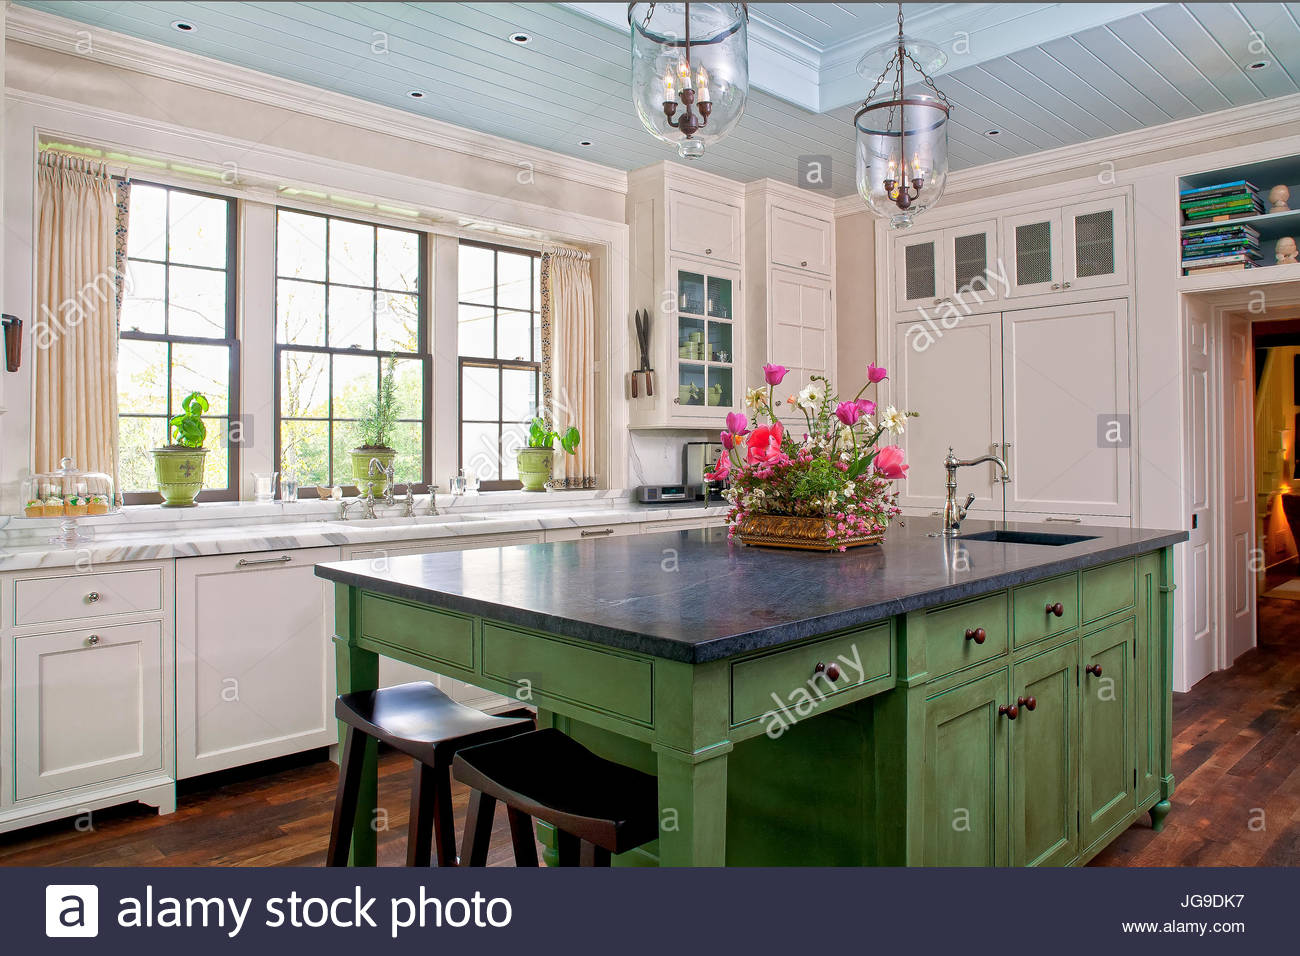 cottage kitchen lighting. Country, Cottage Kitchen, Aqua Blue Ceiling, Green Island, Wood Floors, Flowers, , Pendant Lighting, Architectural More Views Available Kitchen Lighting A